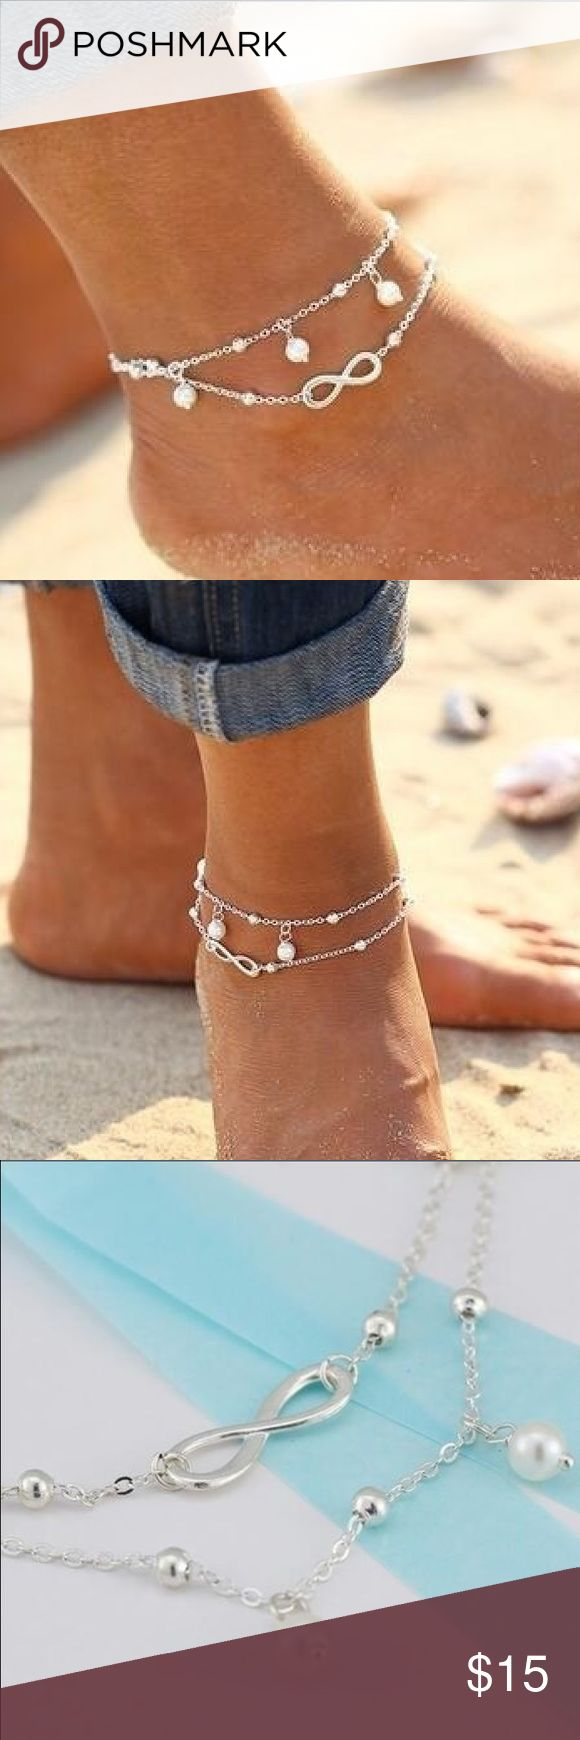 countereviews bracelet s the womens women best in bracelets ankle waterproof anklet top